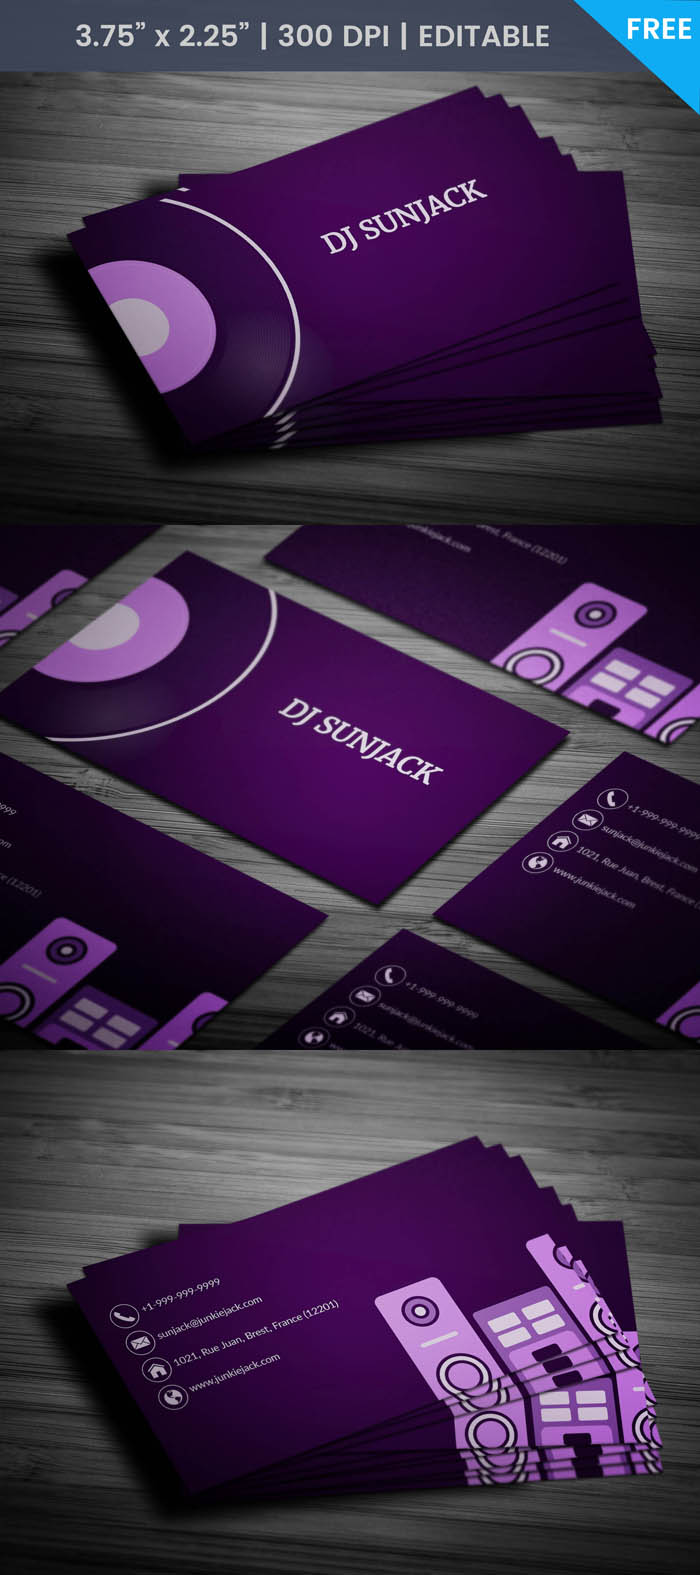 Free Disc Jockey Business Card Template